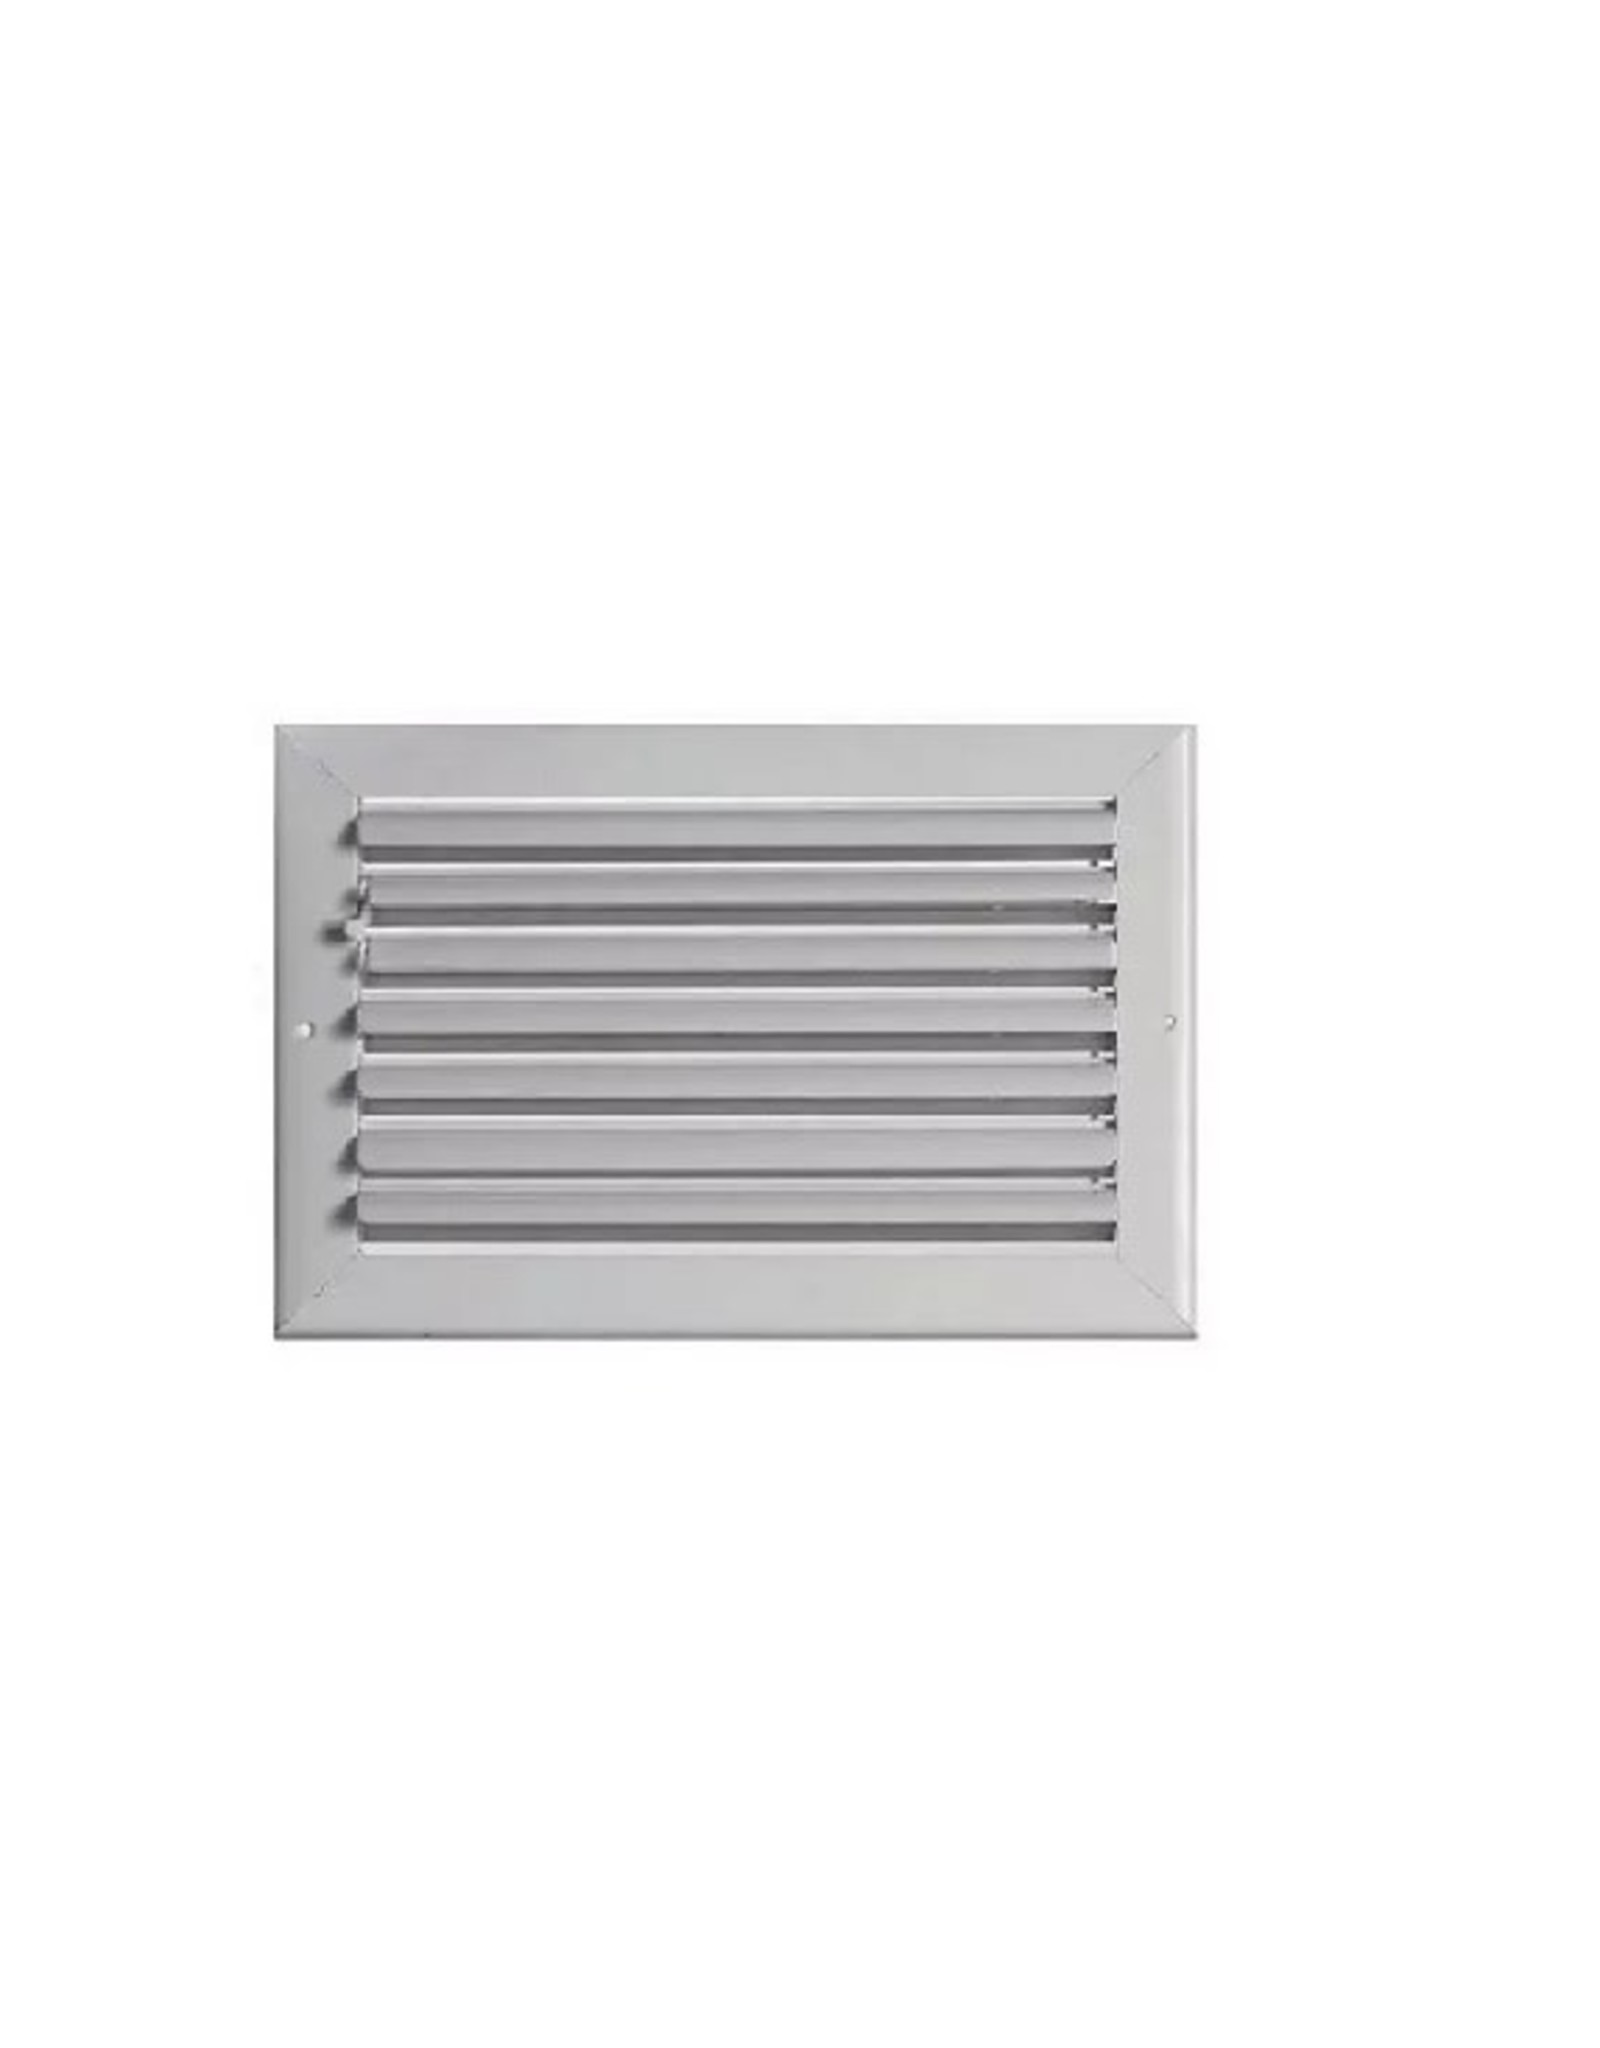 AirGuide Manufacturing LLC Curved Blade Supply Register/Diffuser with Multi-shutter Parallel Blade Damper